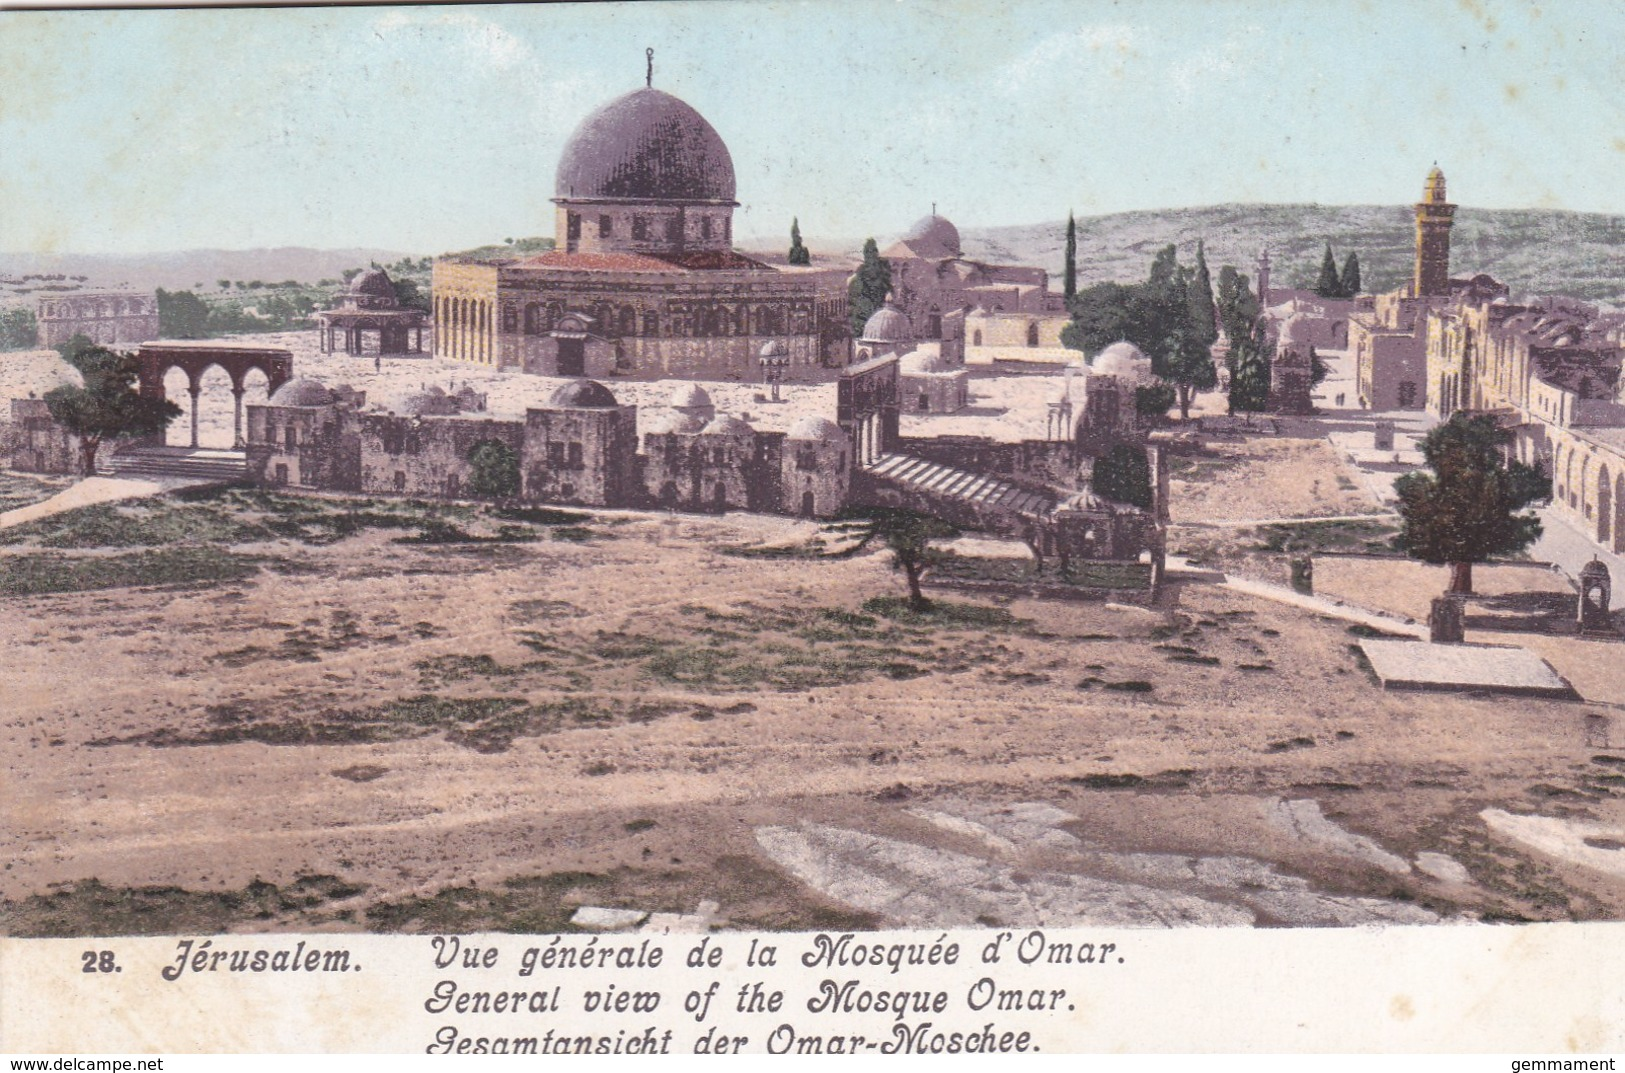 JERUSALEM - GENERAL VIEW OF THE MOSQUE OMAR - Lebanon